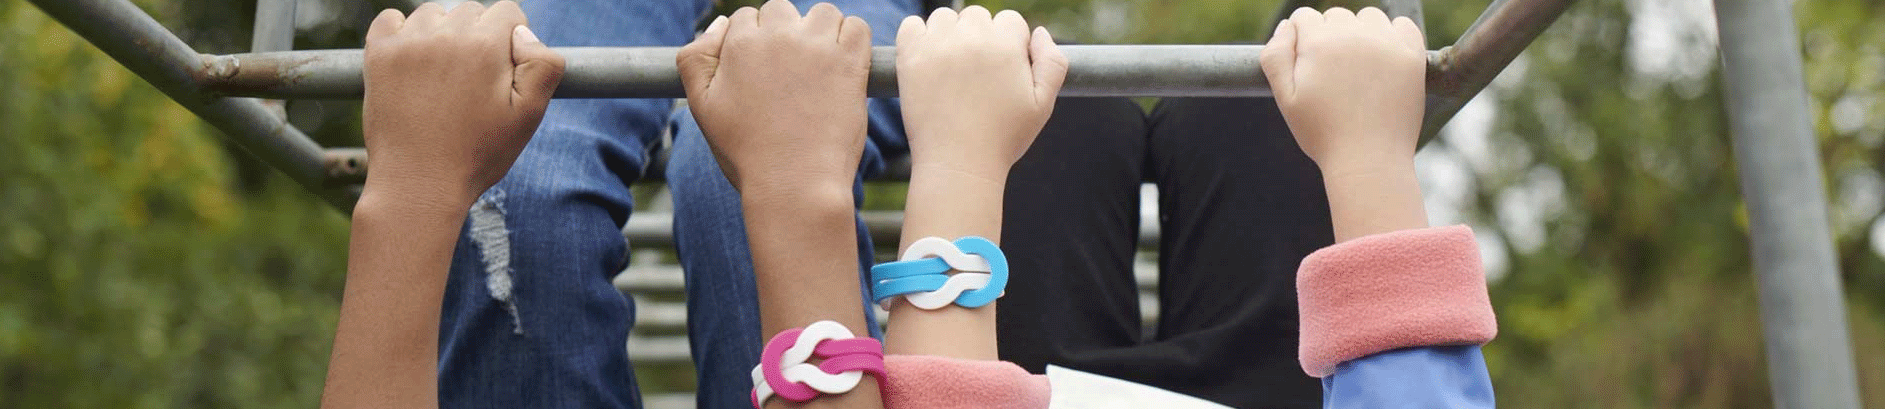 Children upside-down on climbing frame wearing pink and blue Unity Bands